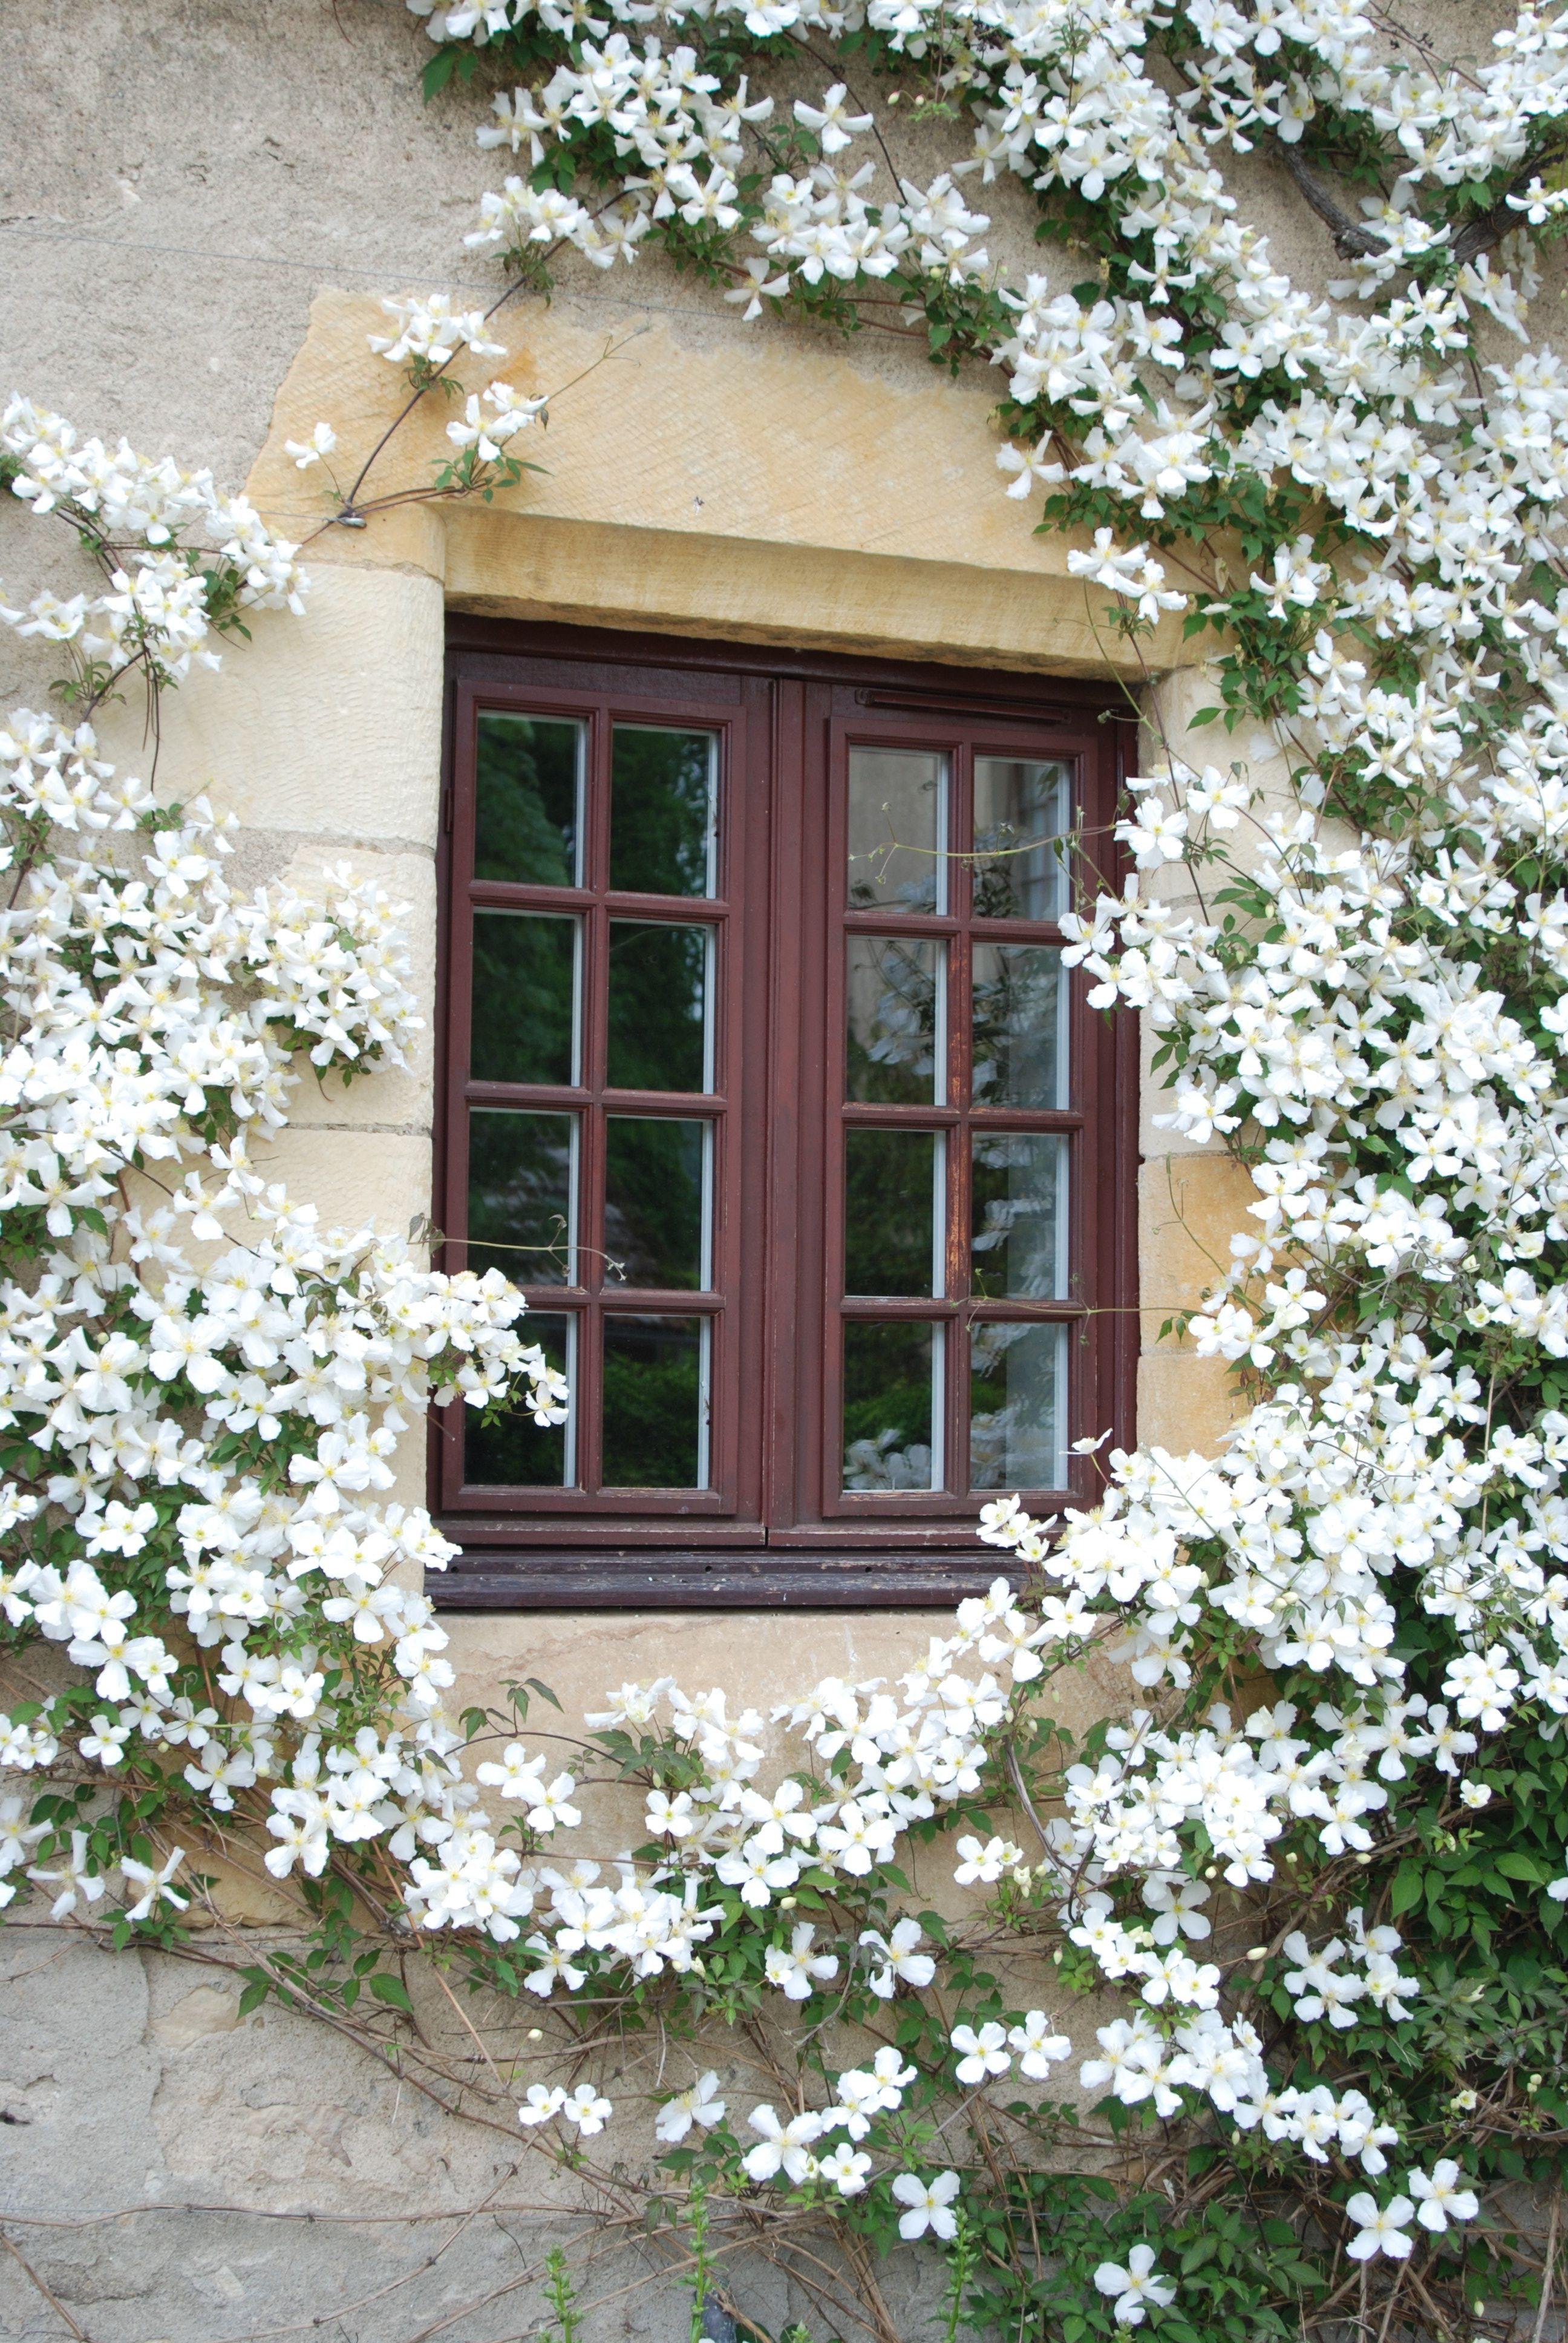 white clematis trained around a window by Rolf Blijleven via www.pithandvigor.com